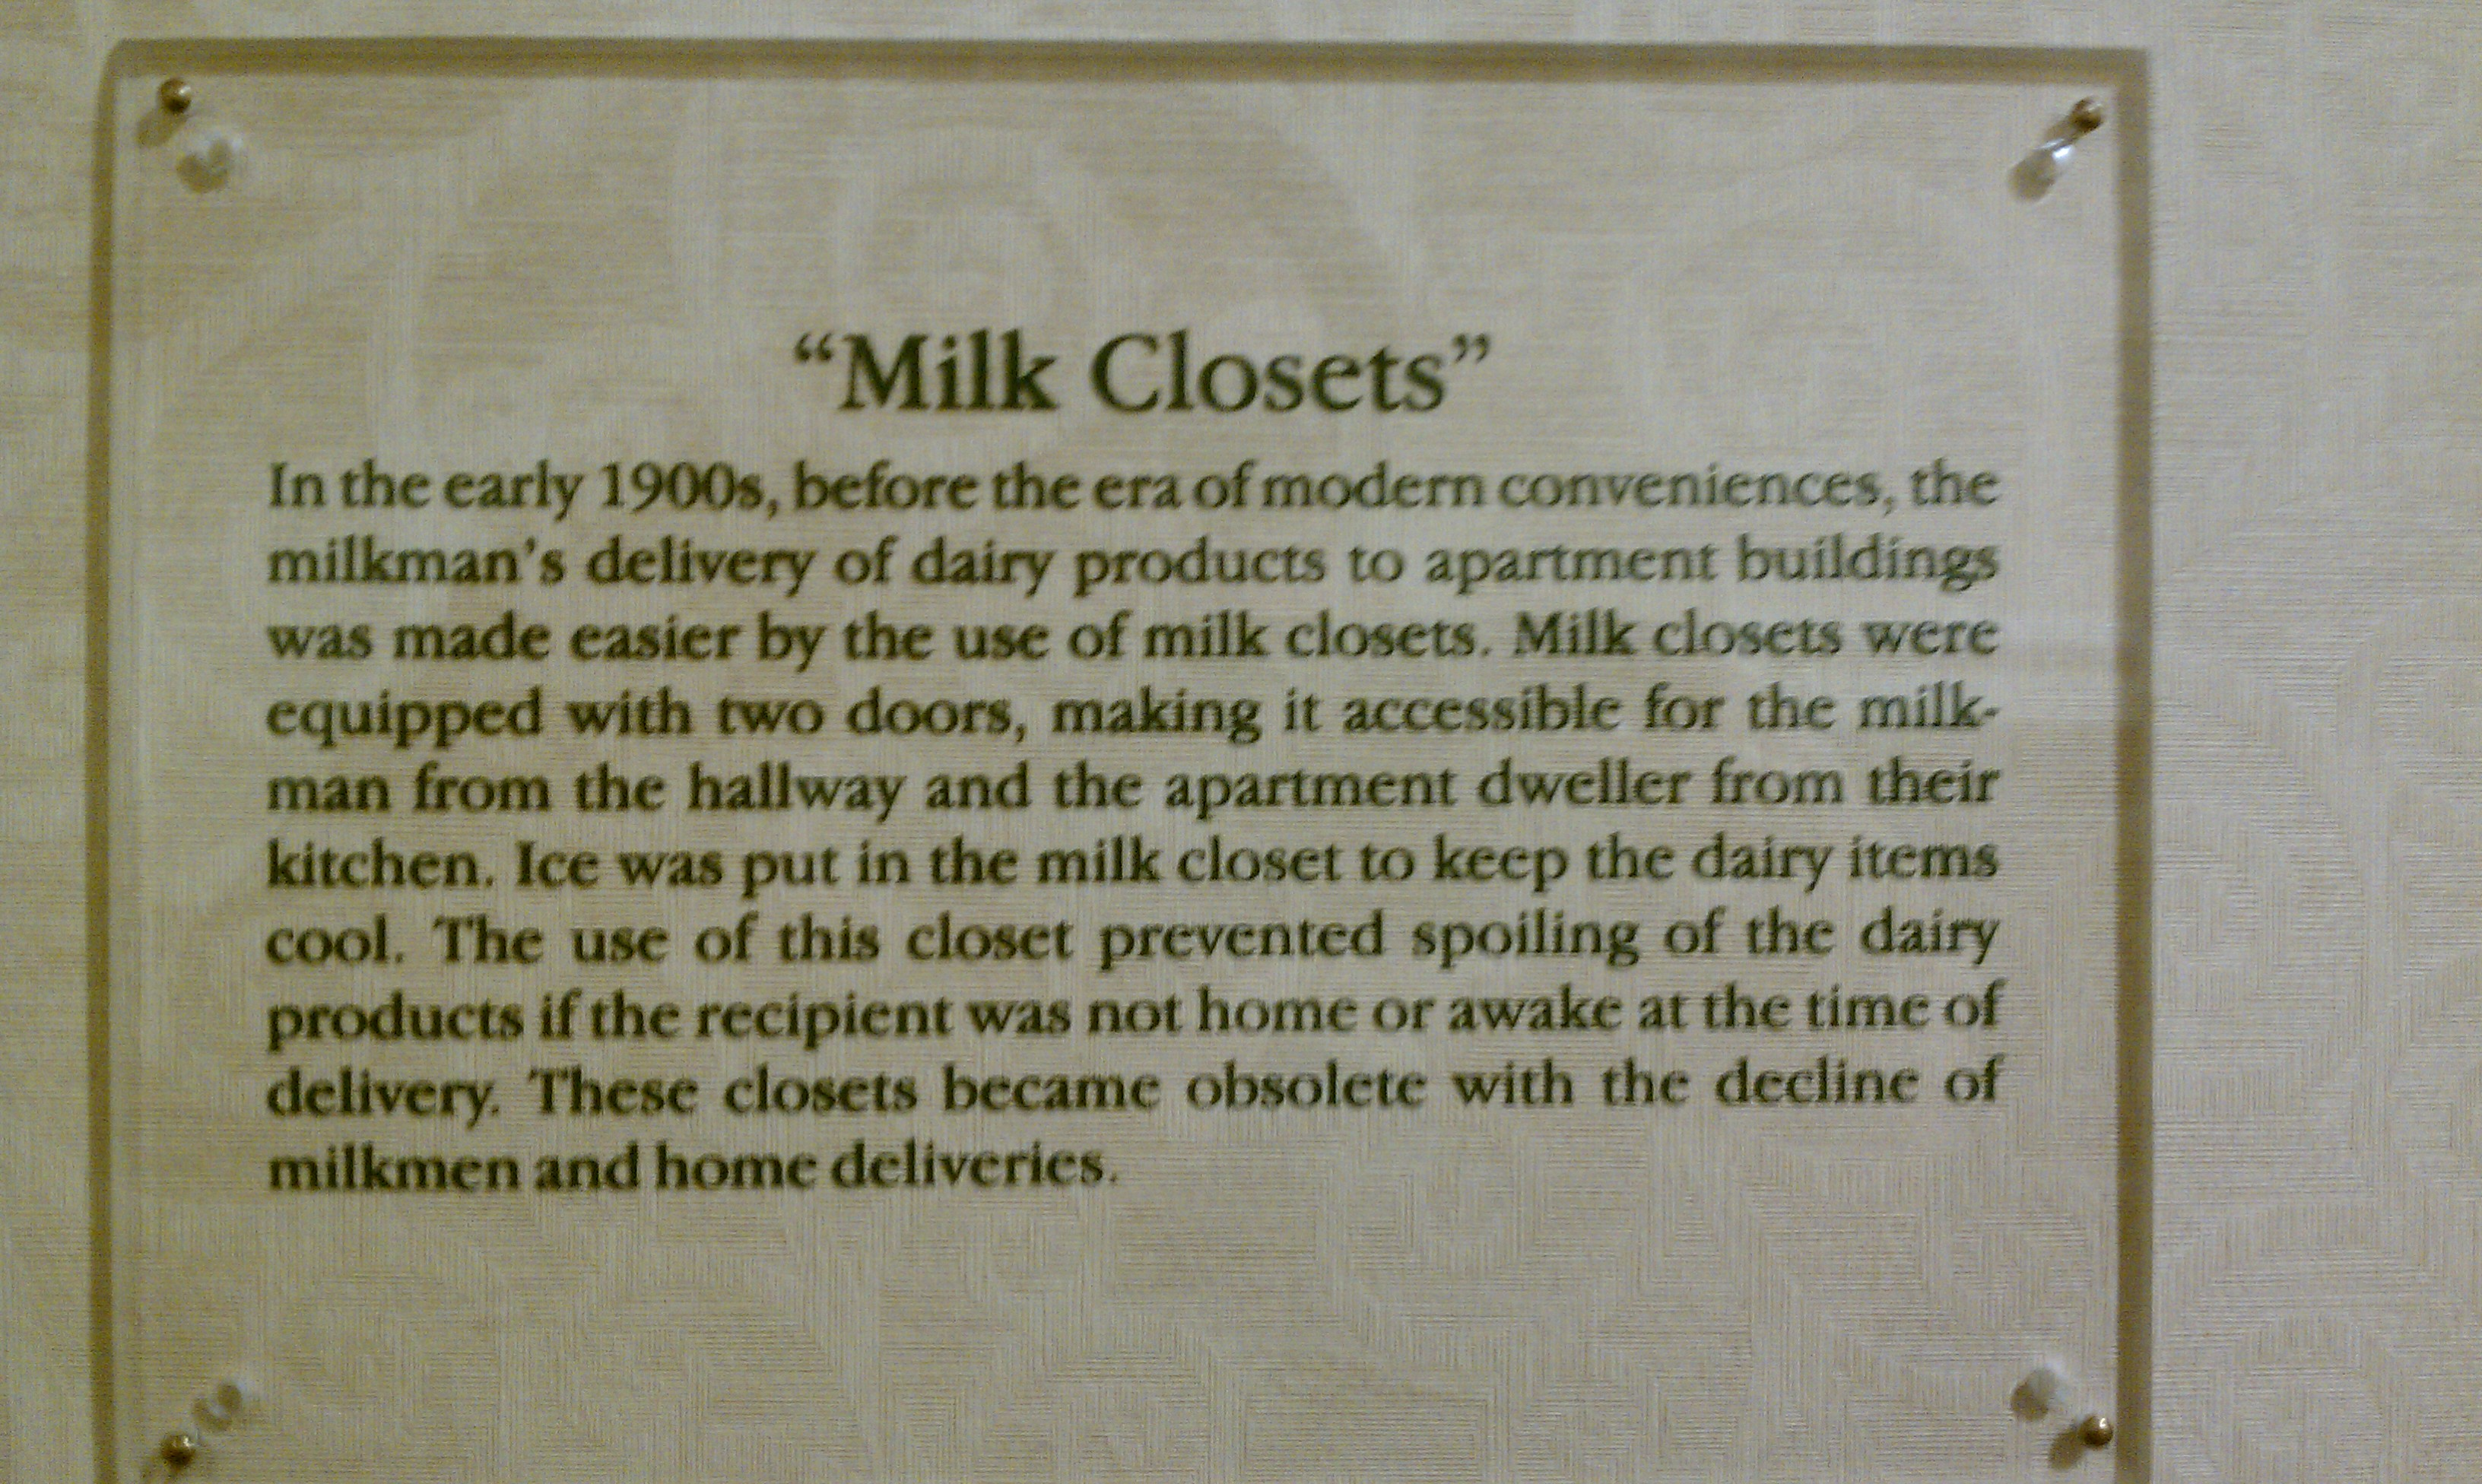 Milk Closet description